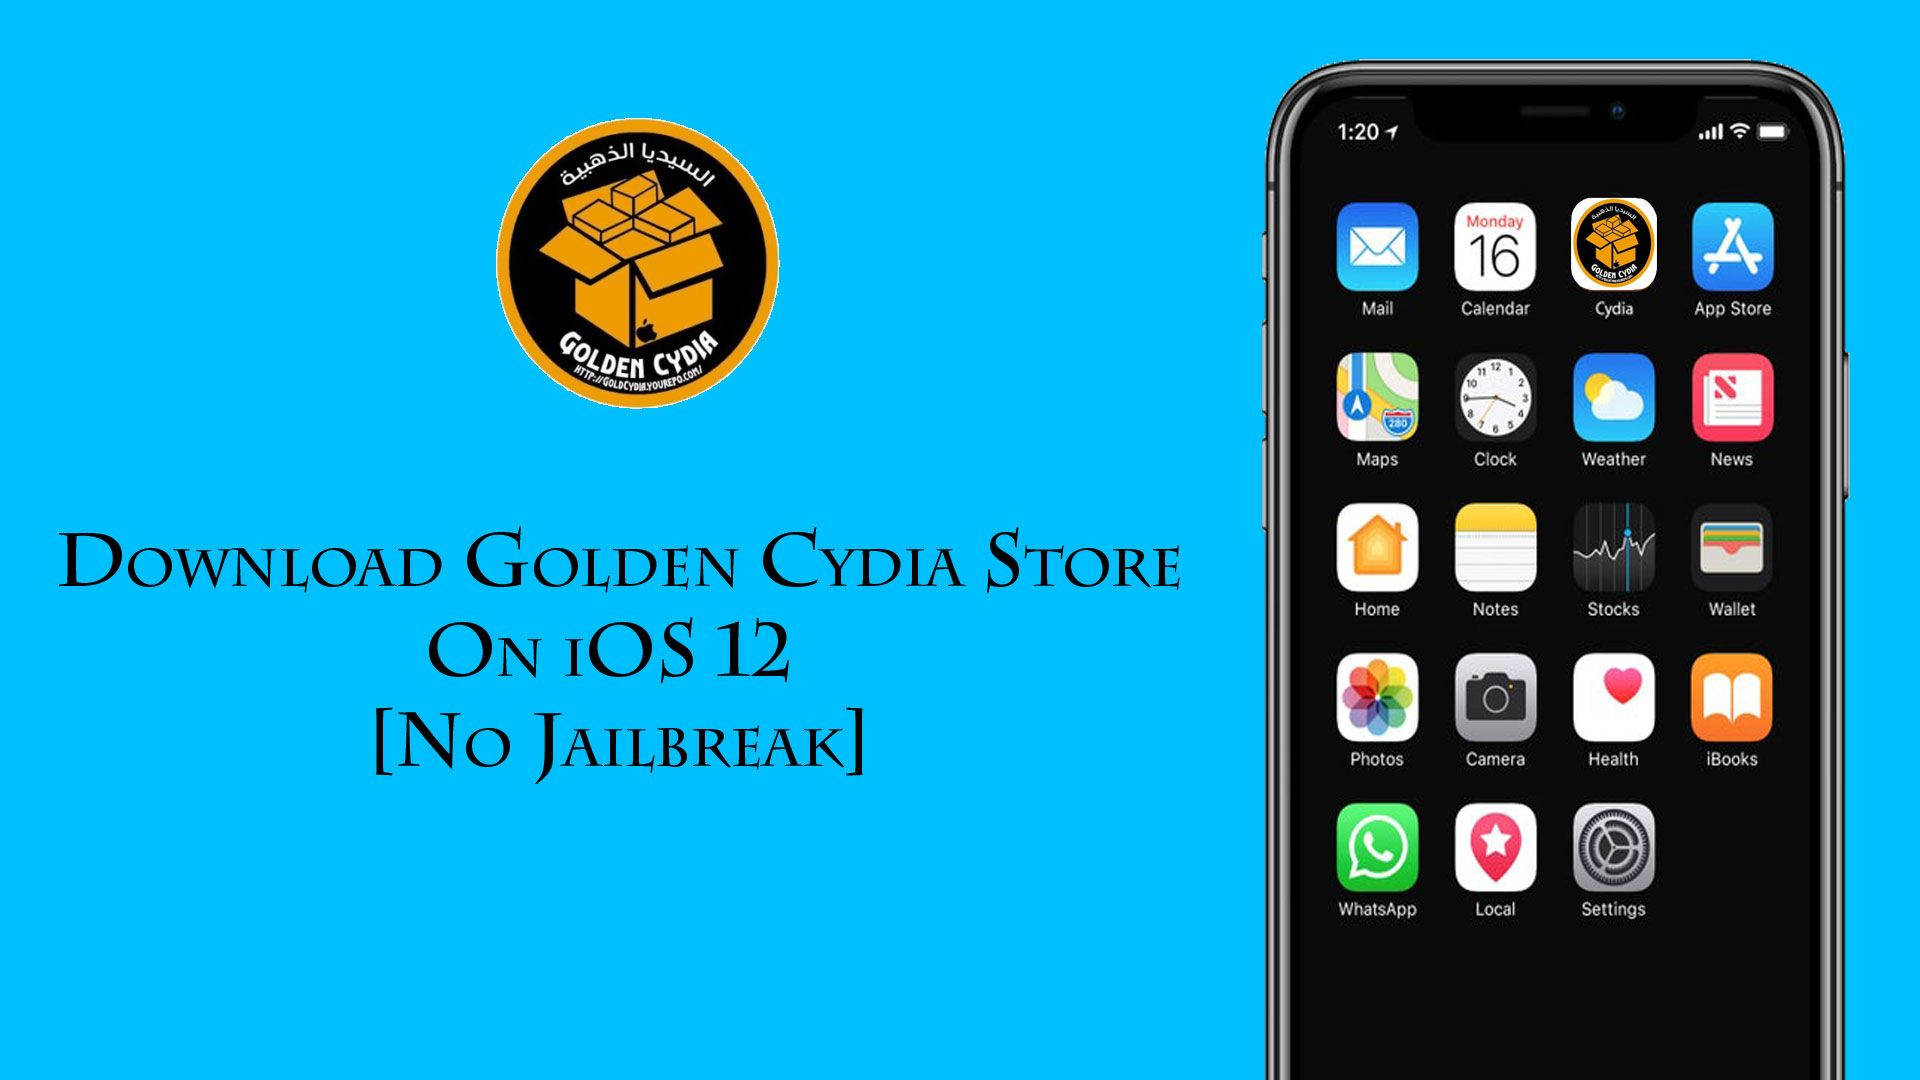 How to Download golden Cydia store on iOS 12 without